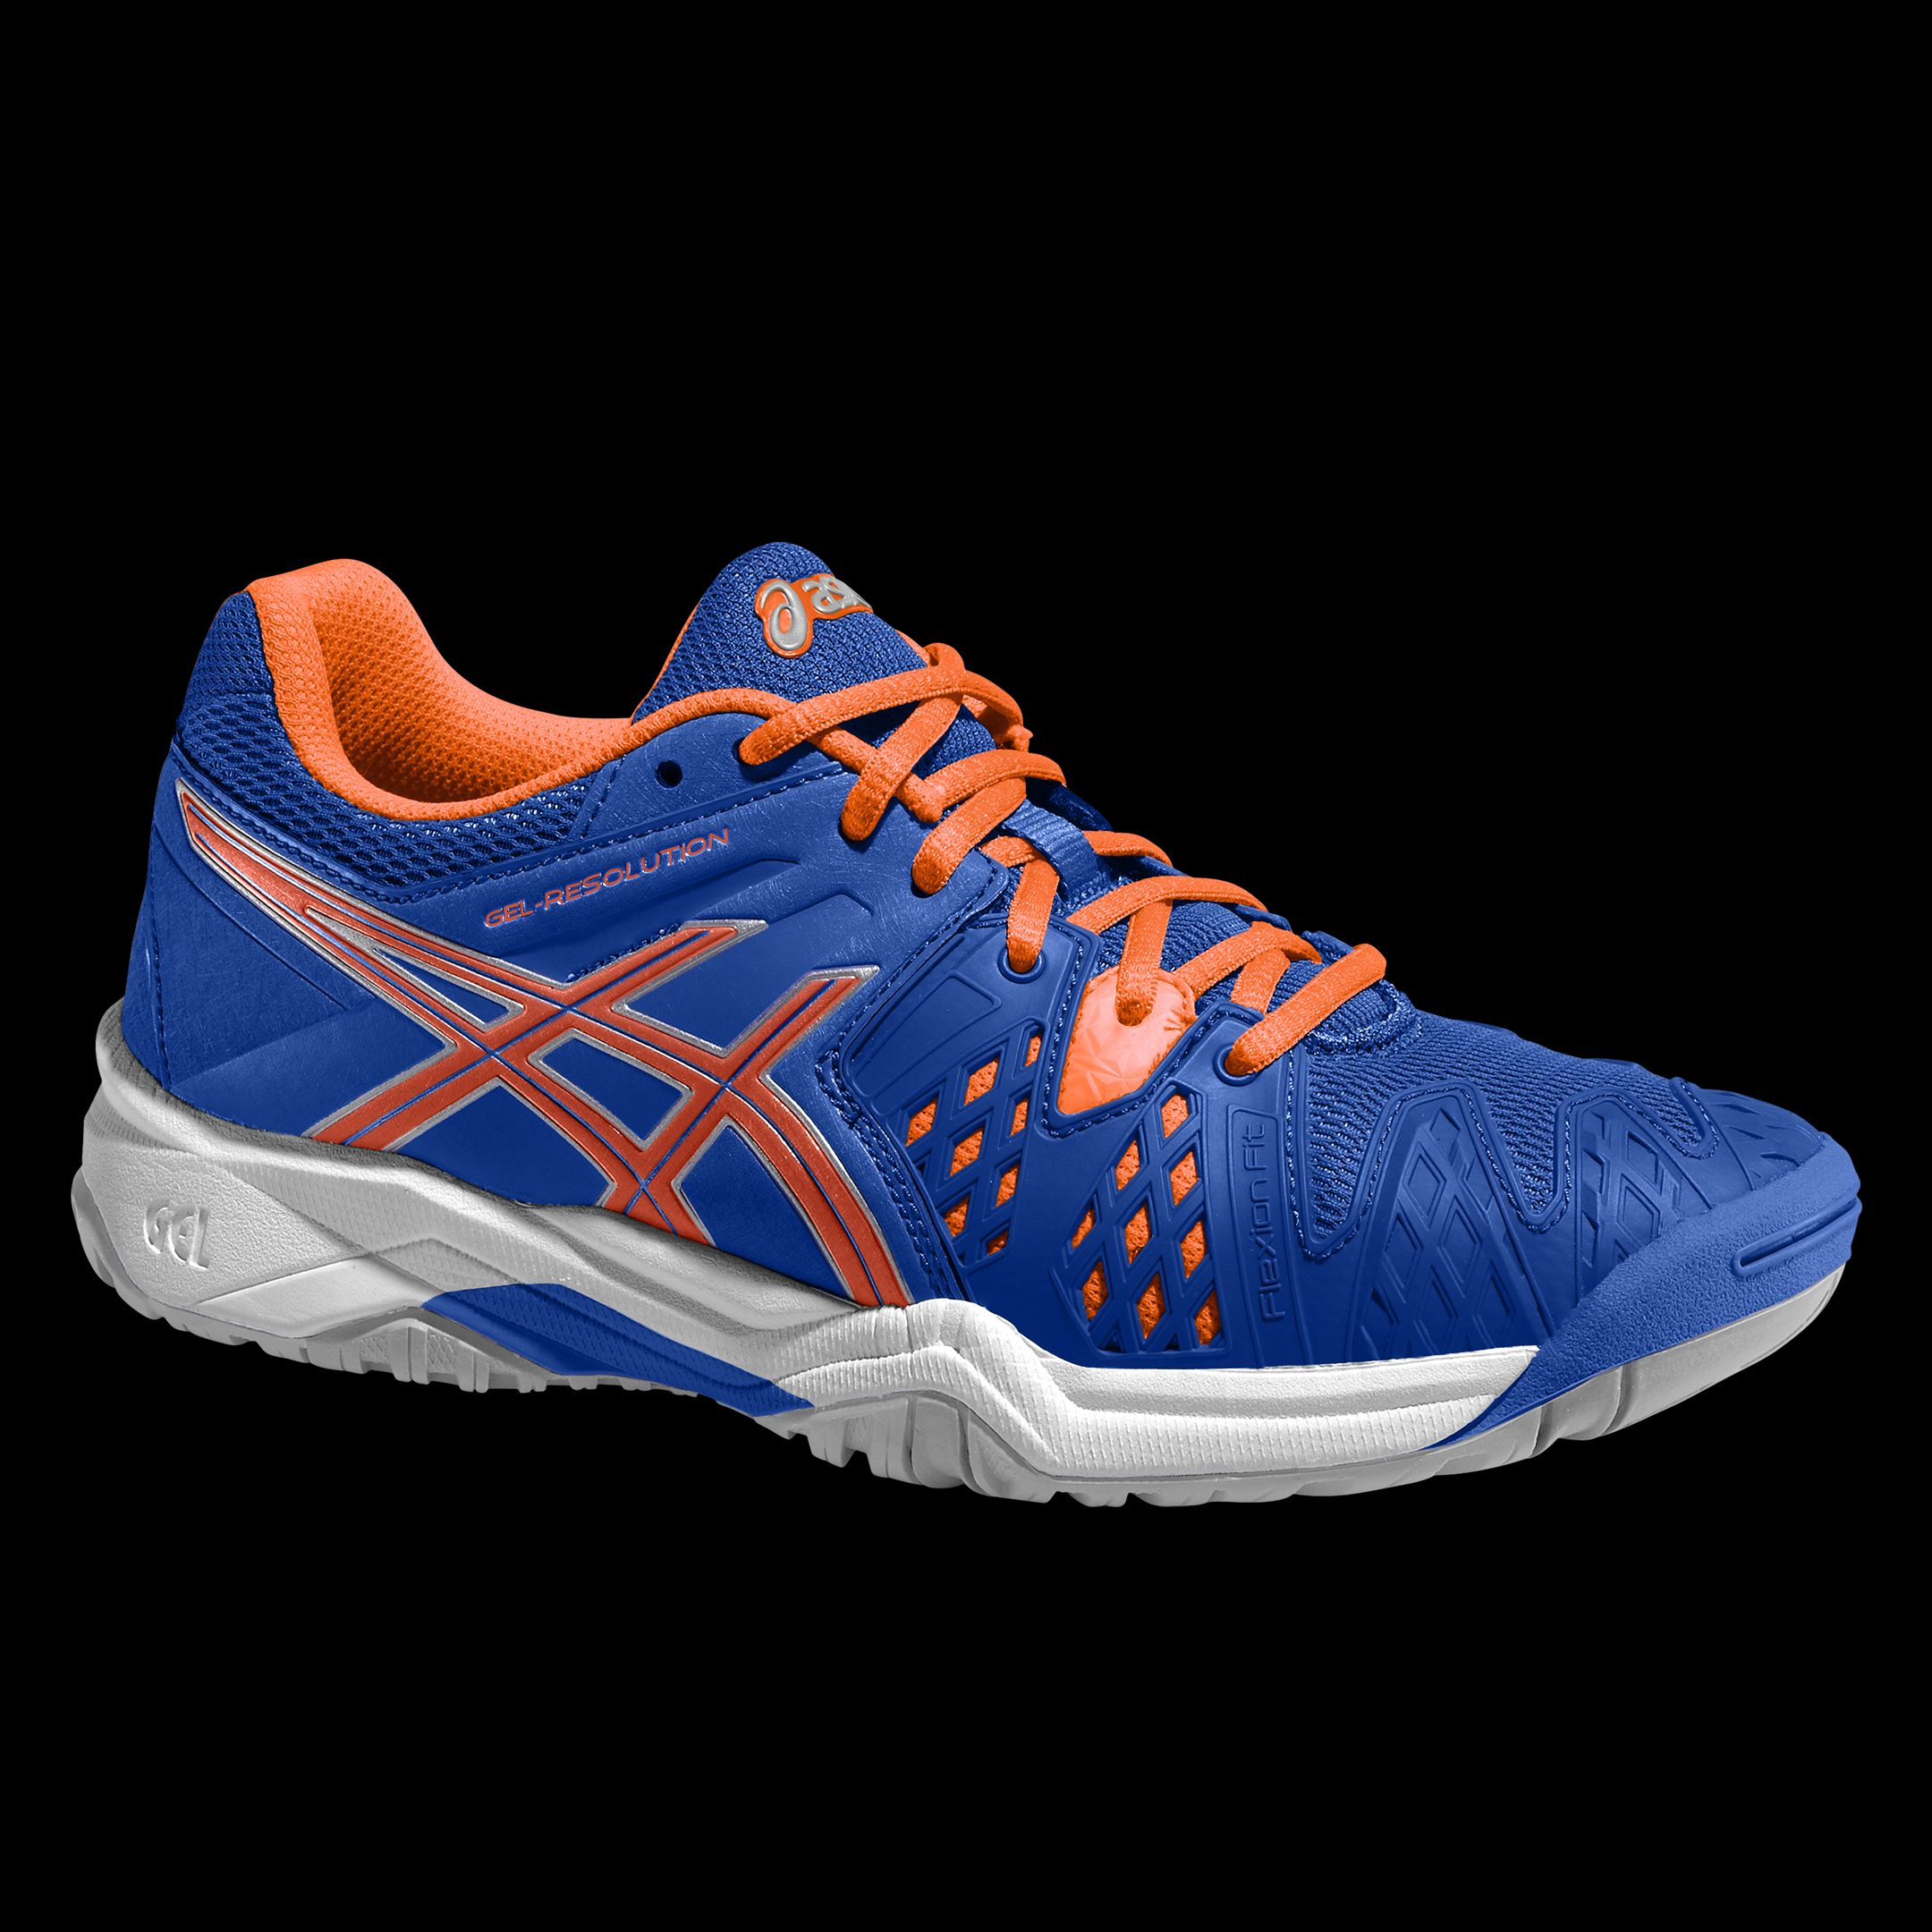 Asics Gel-Resolution 6 Blu-Arancione Junior